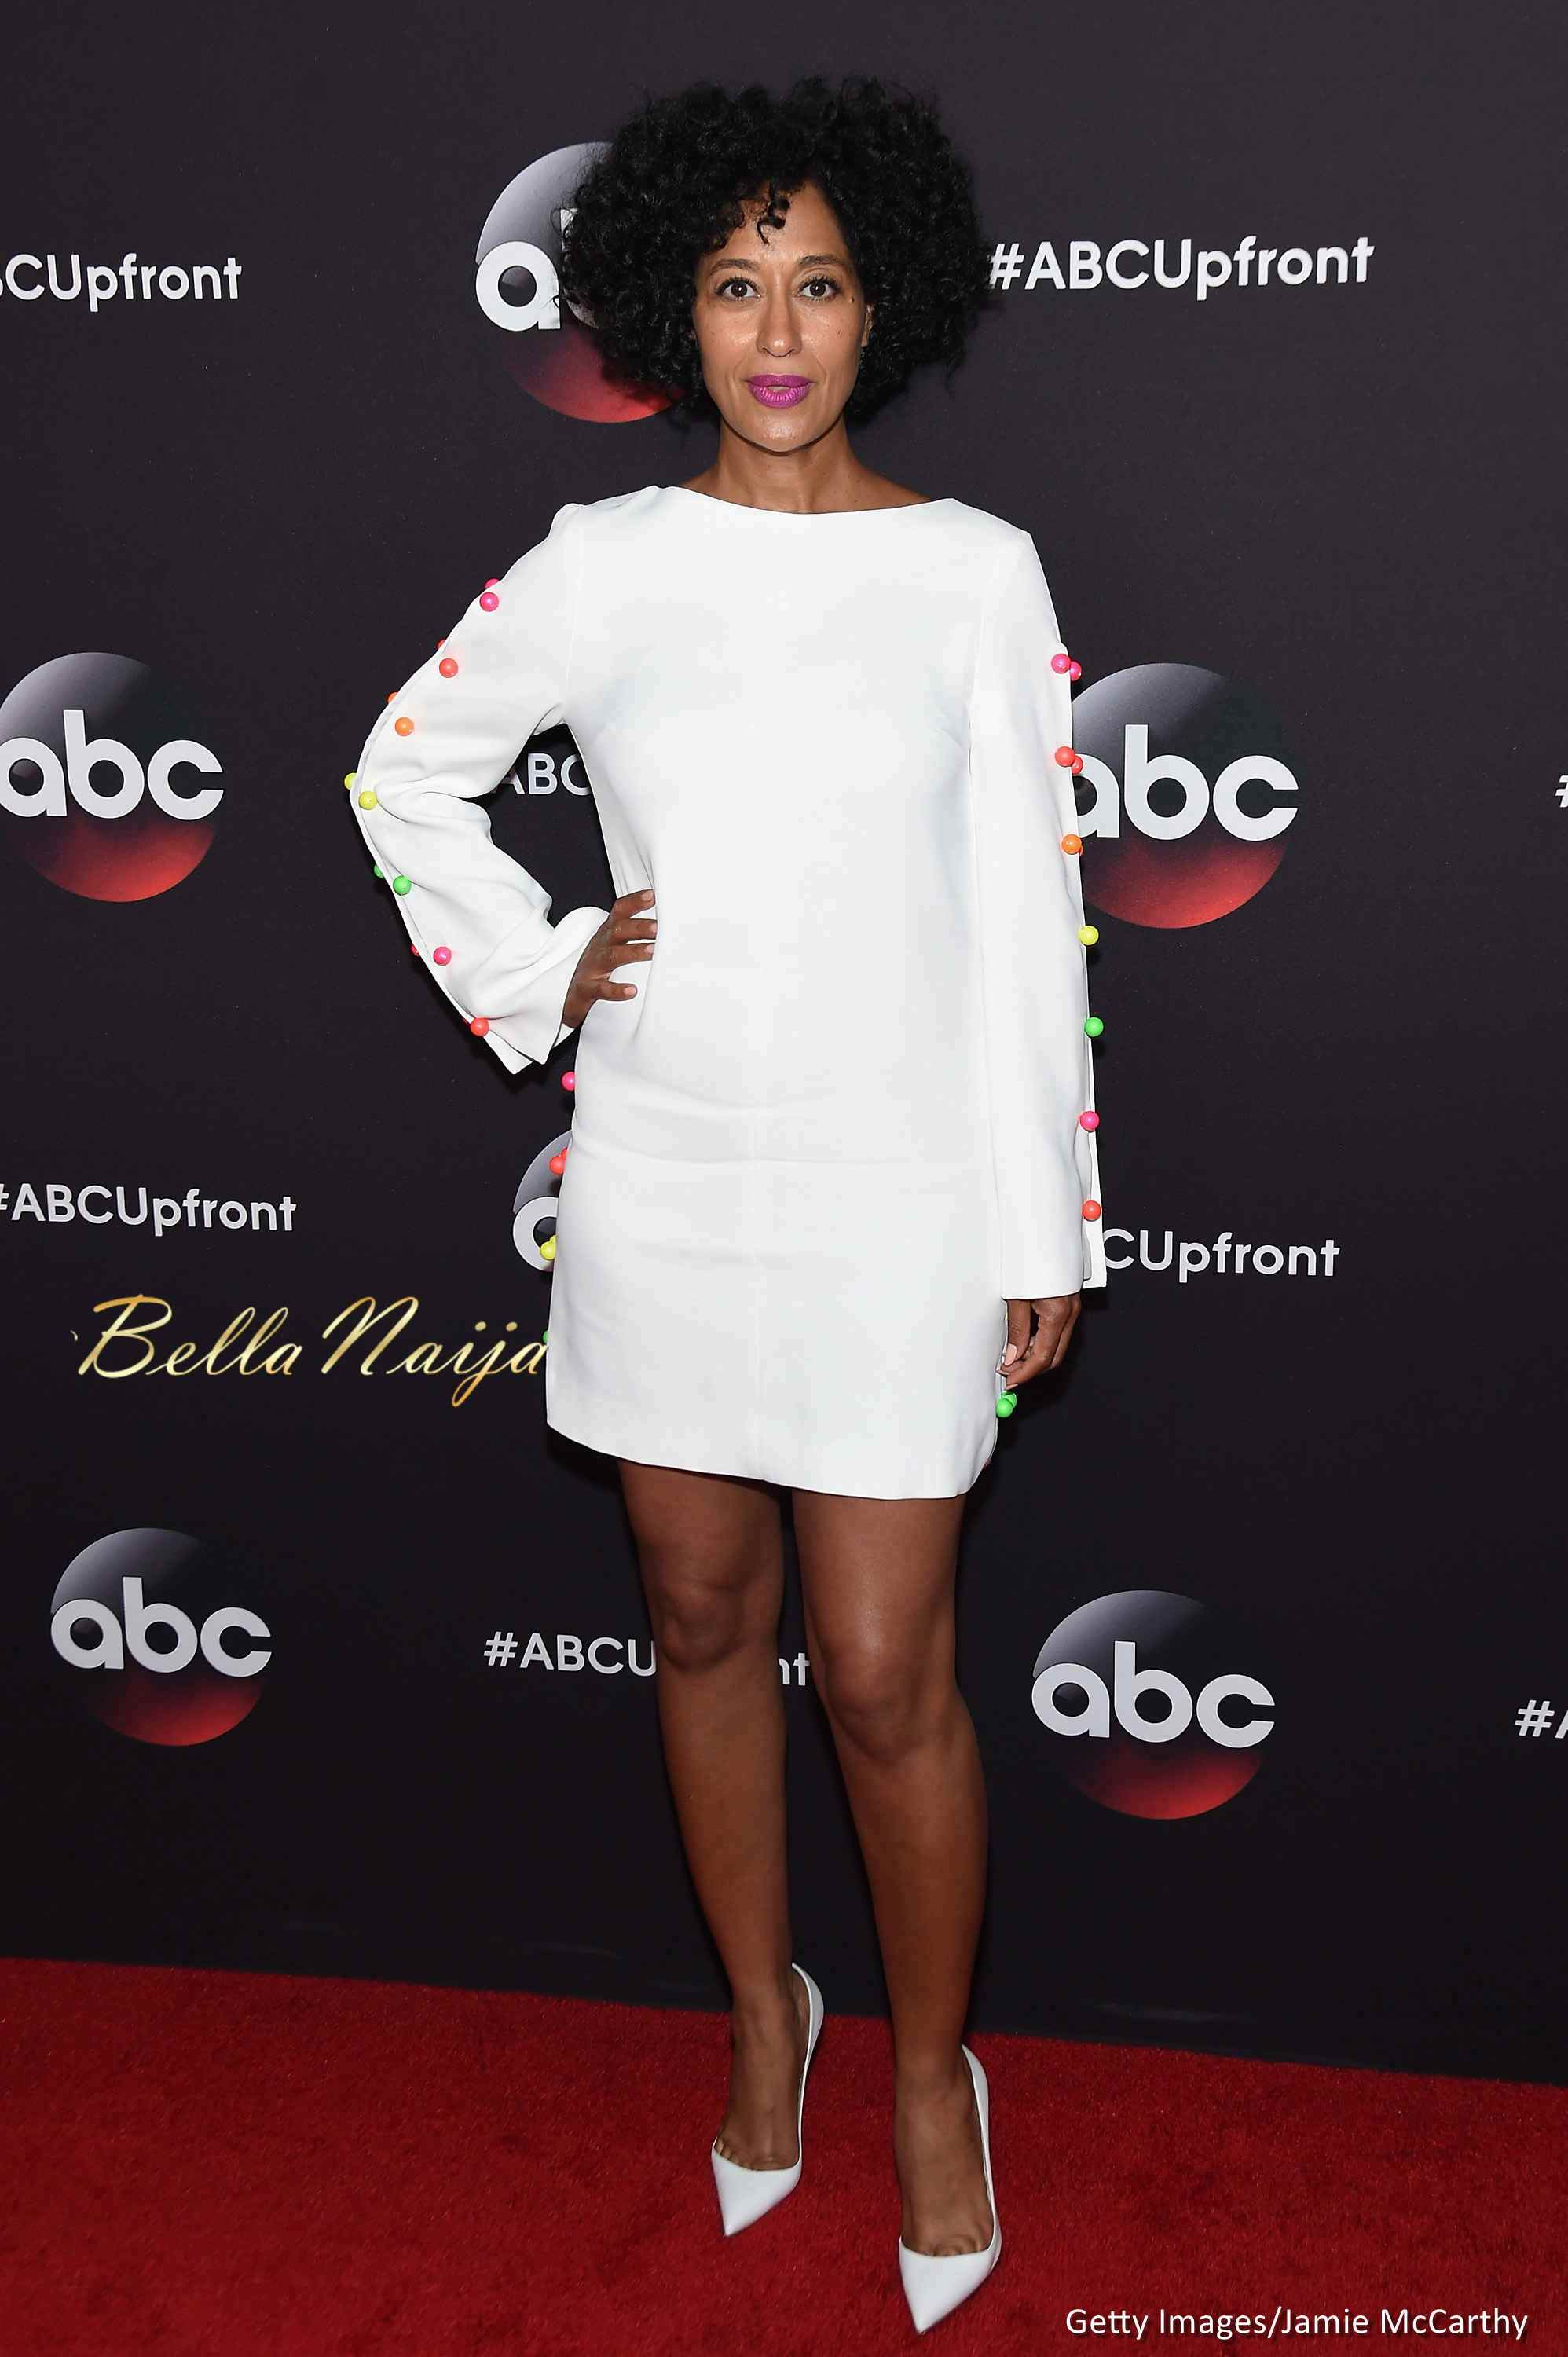 kerry washington tracee ellis ross shonda rhimes amp more attend the 2015 abc upfront event